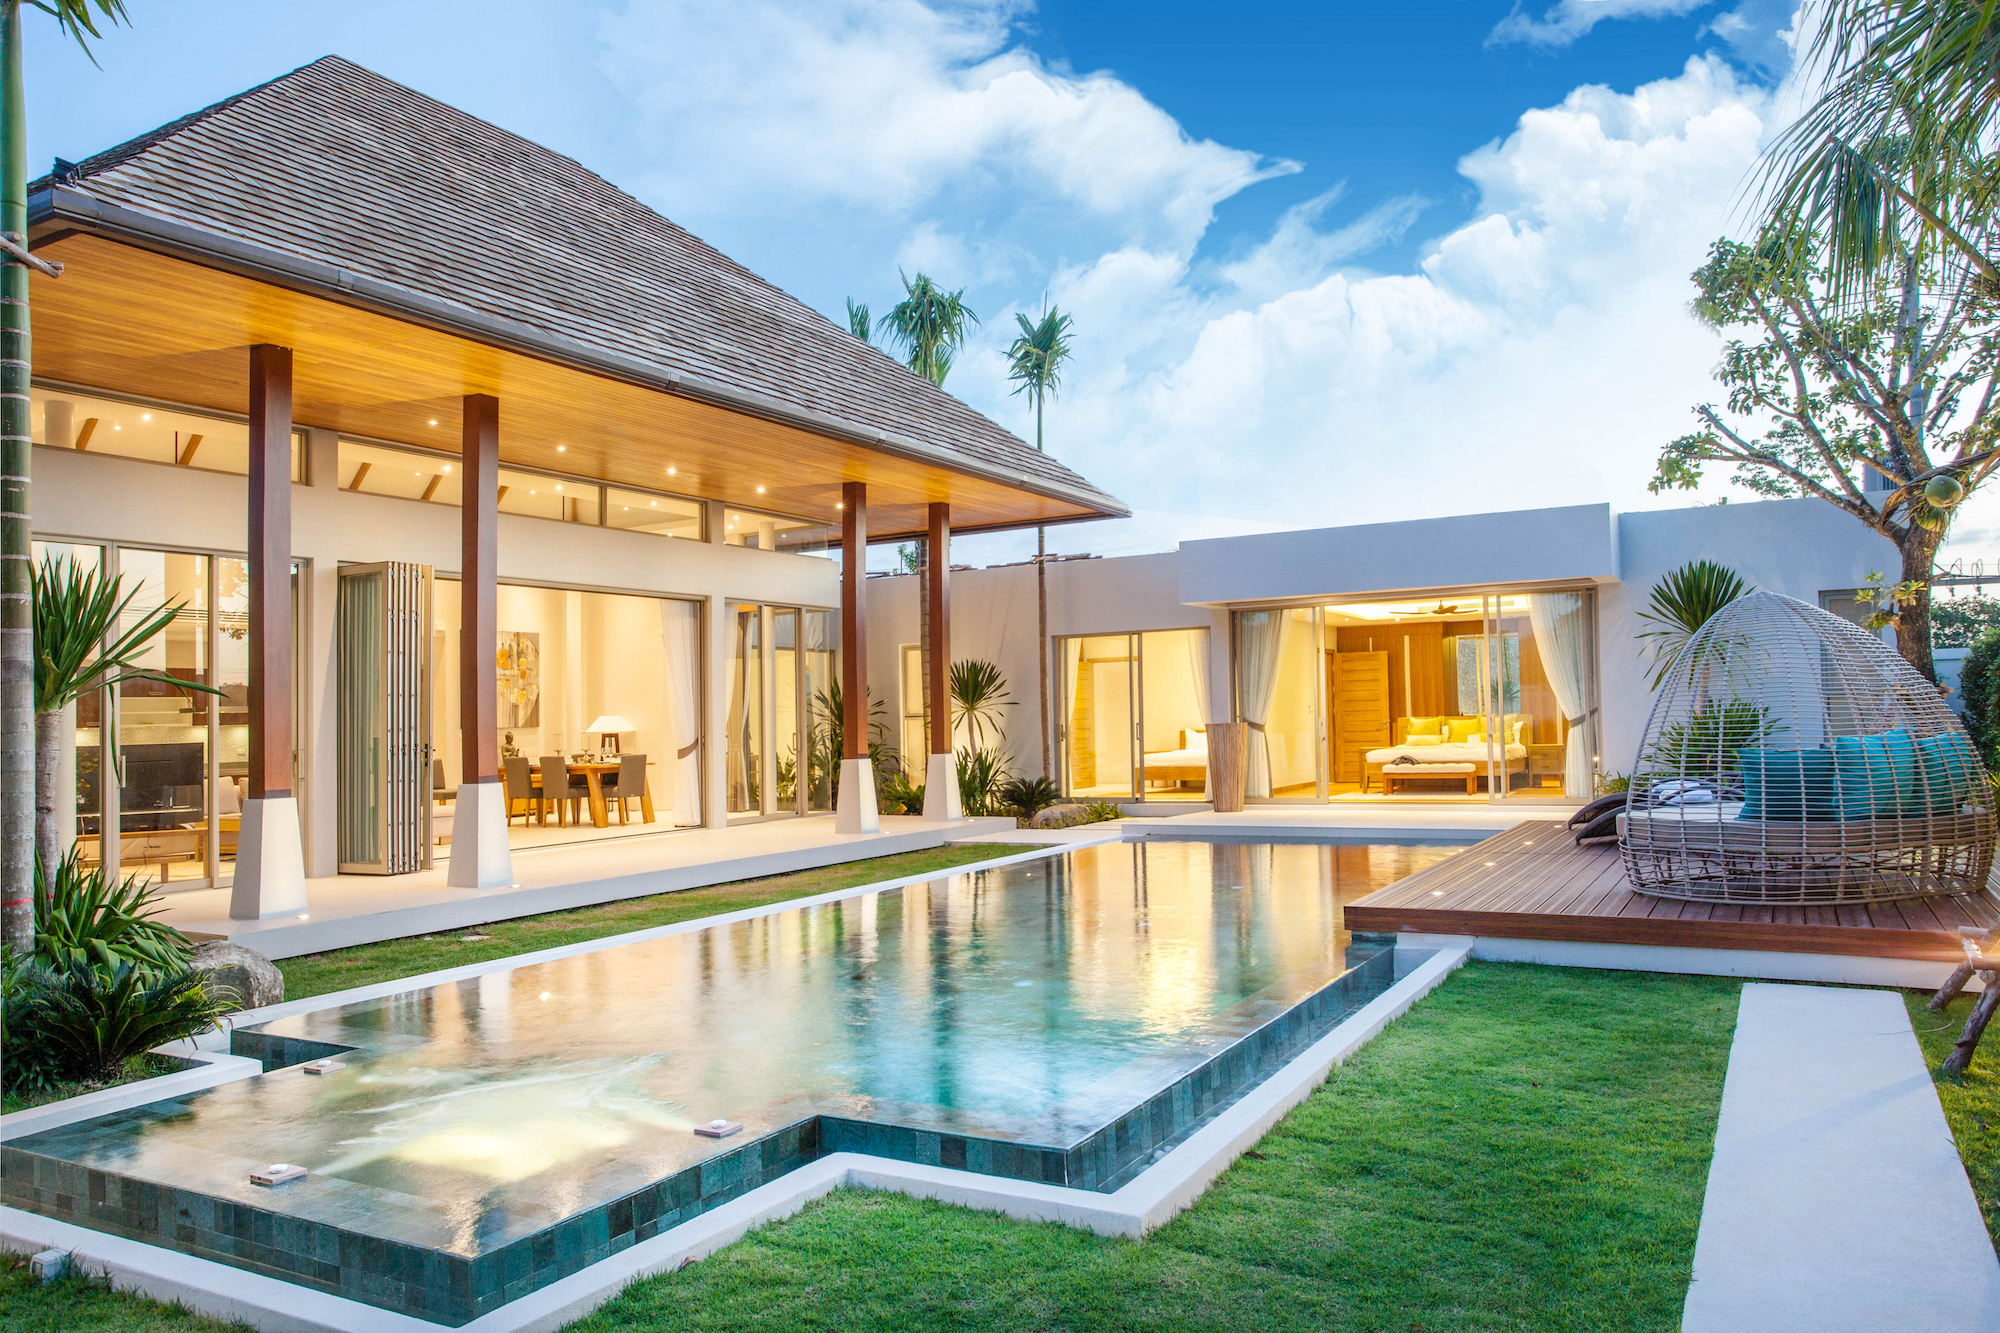 Maintenance Tips for Luxury Vacation Homes & Rental Properties